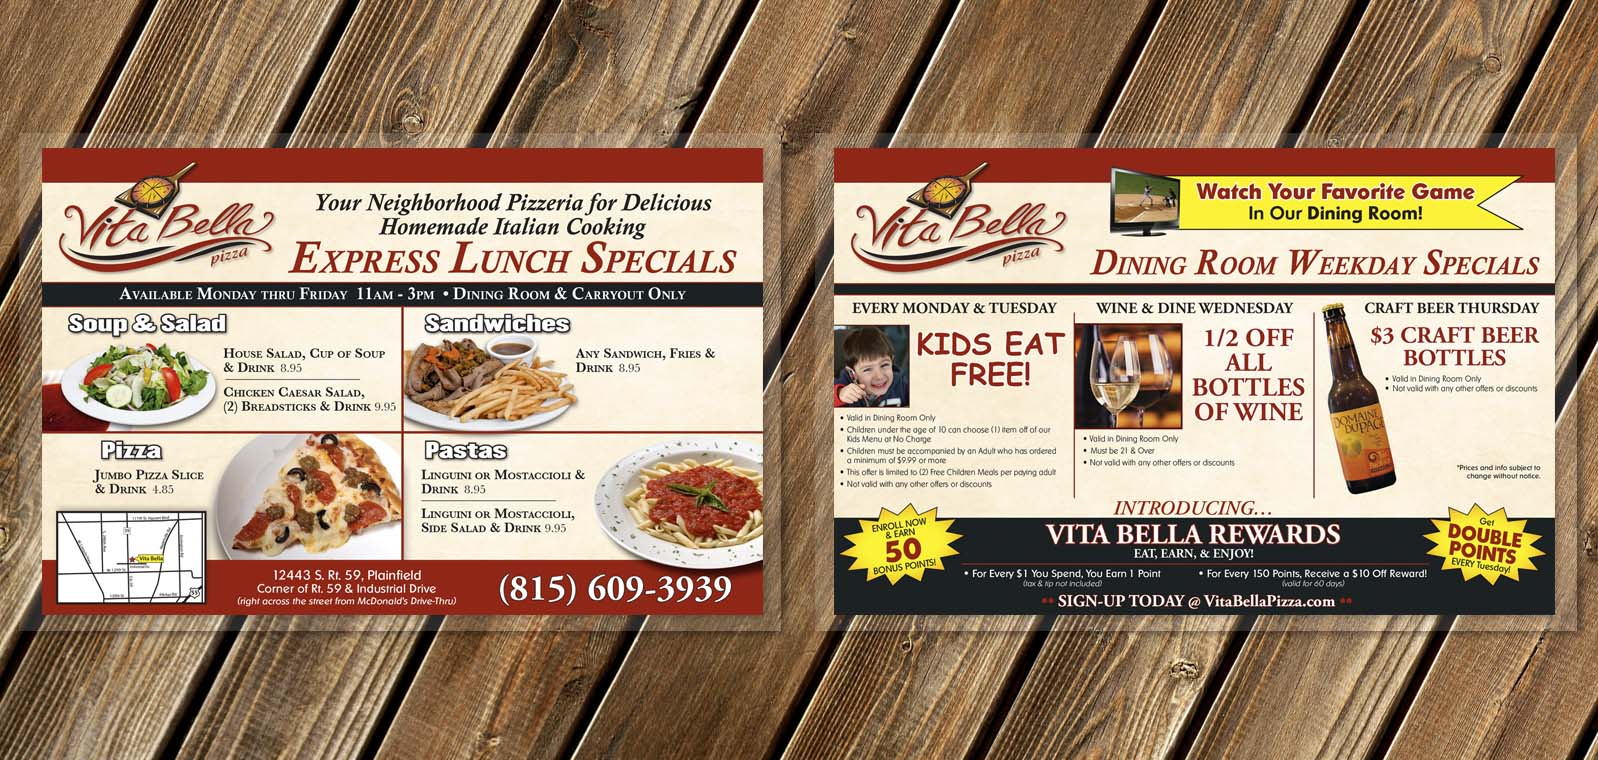 Dine In Lunch Menu Graphic Design from Roselle Graphic Designer Controlled Color, Inc.